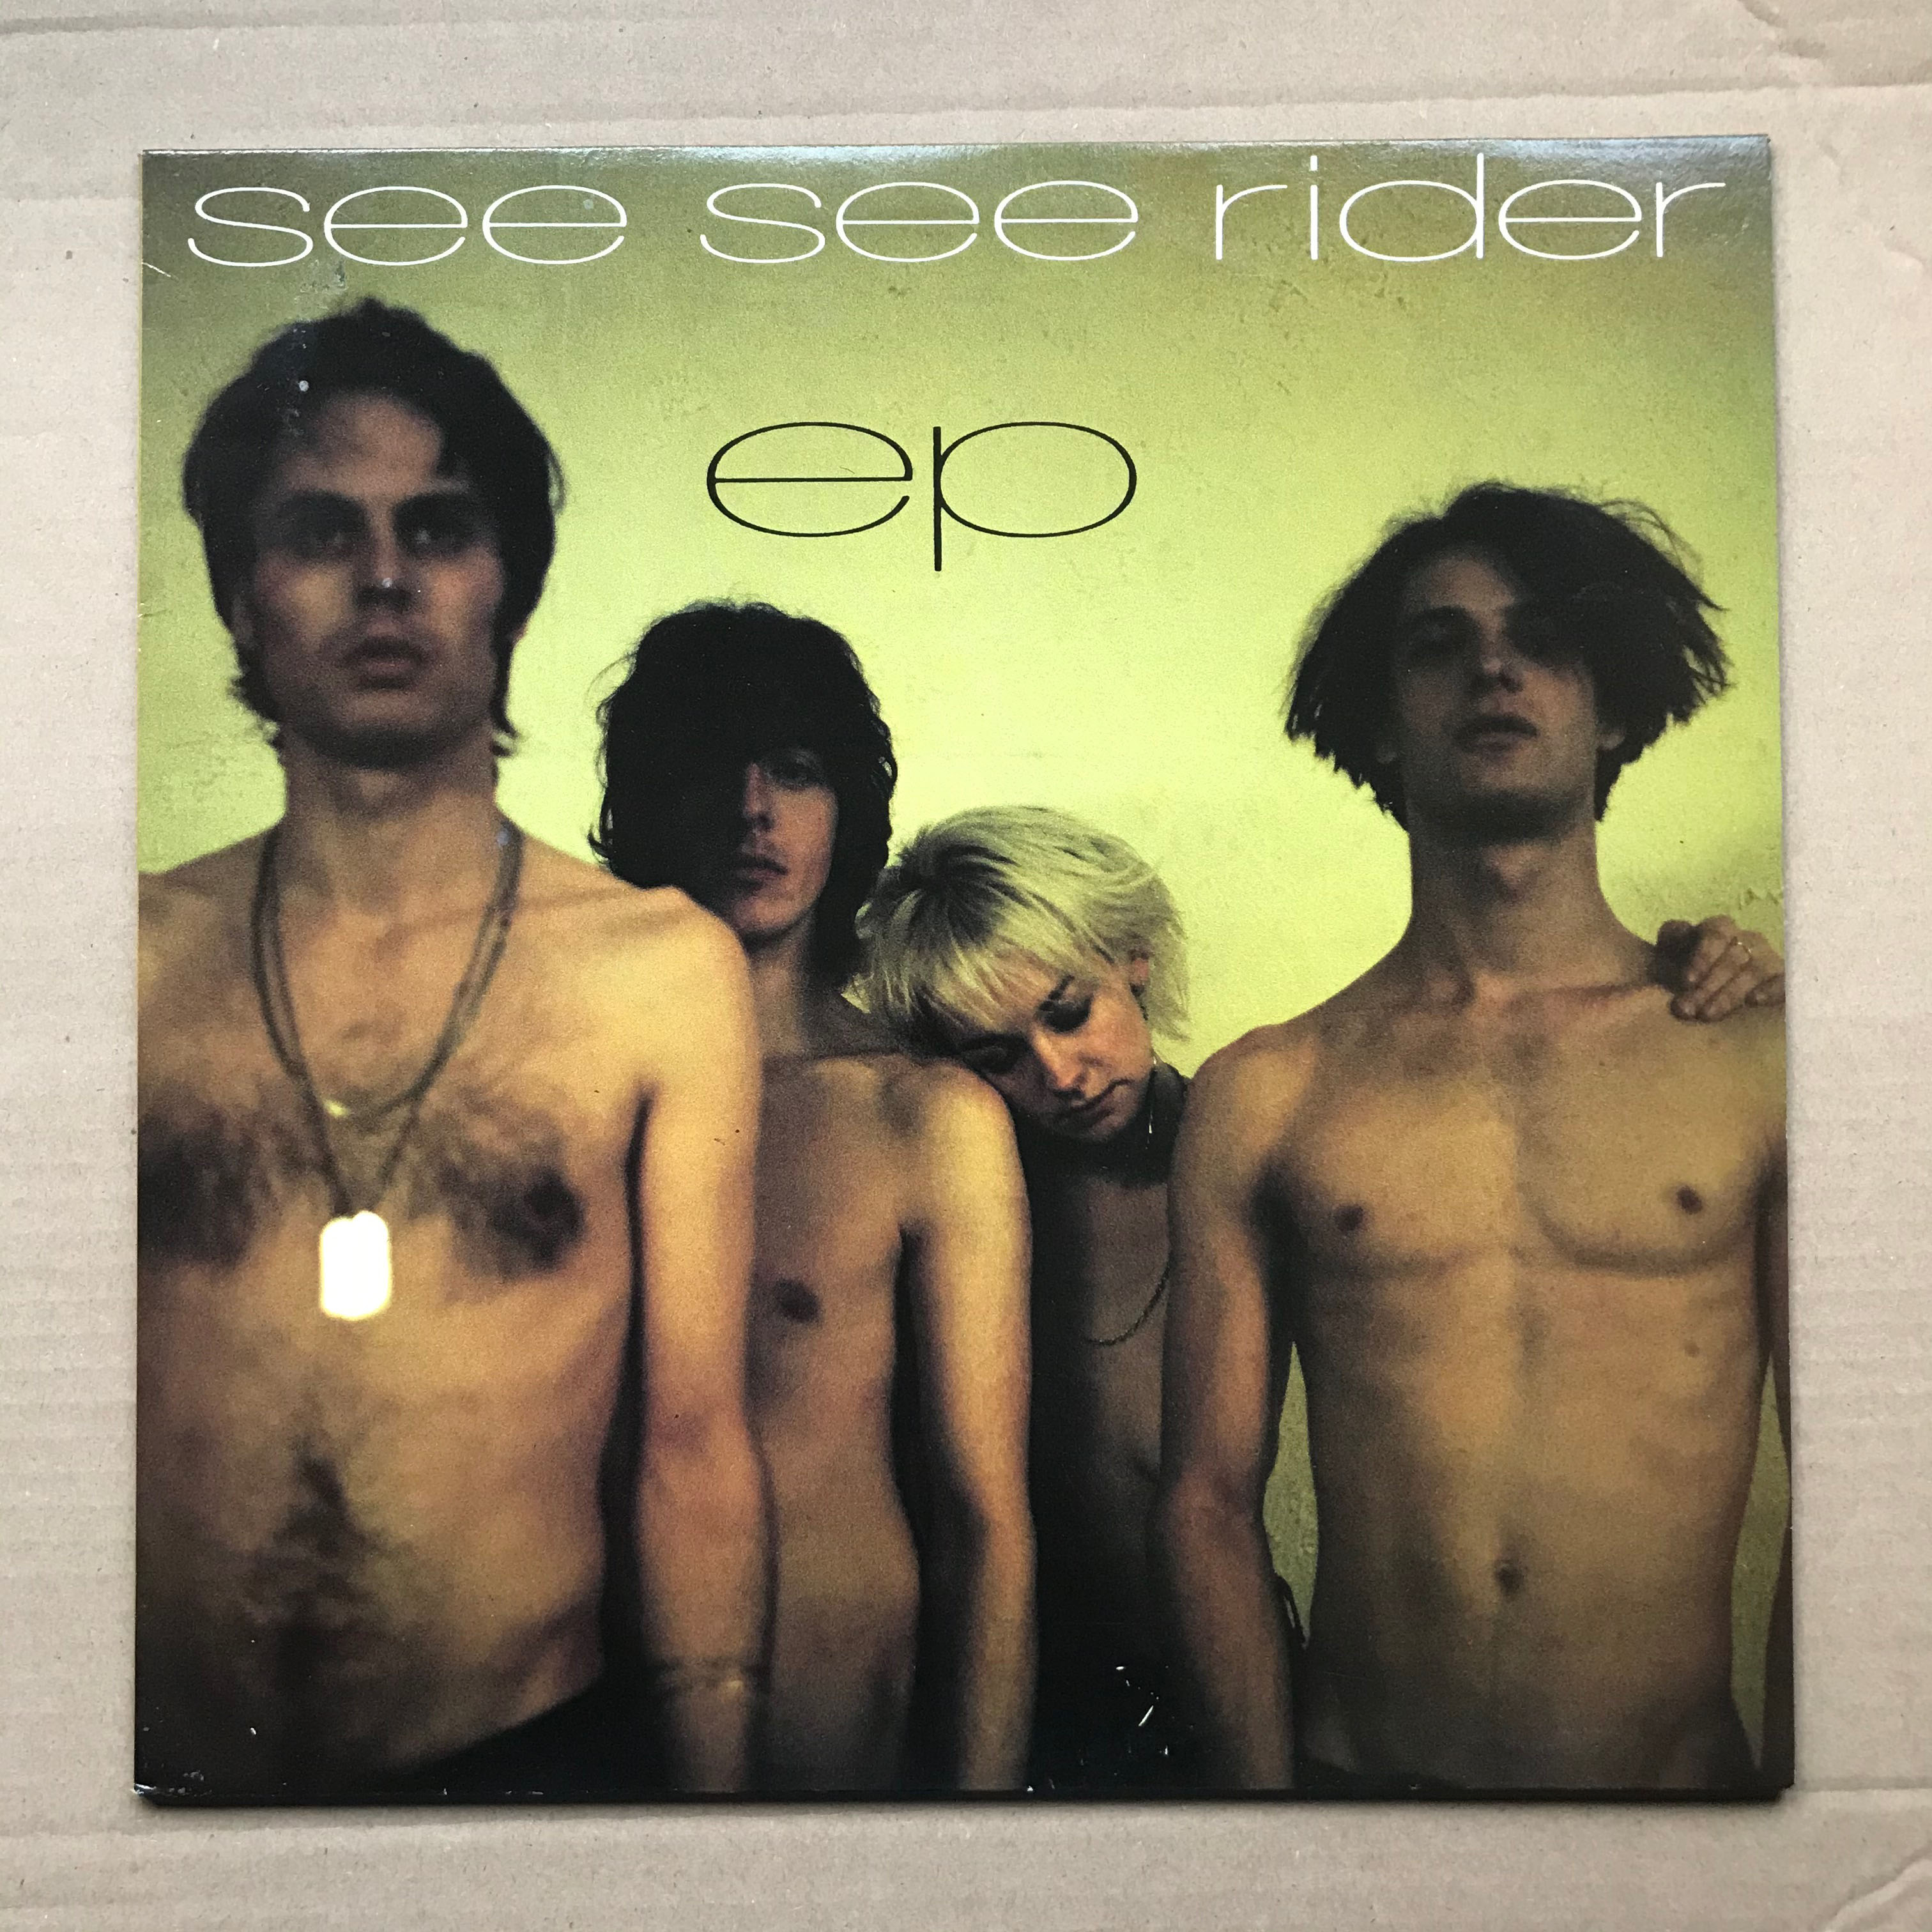 SEE SEE RIDER - EP - 12 inch x 1